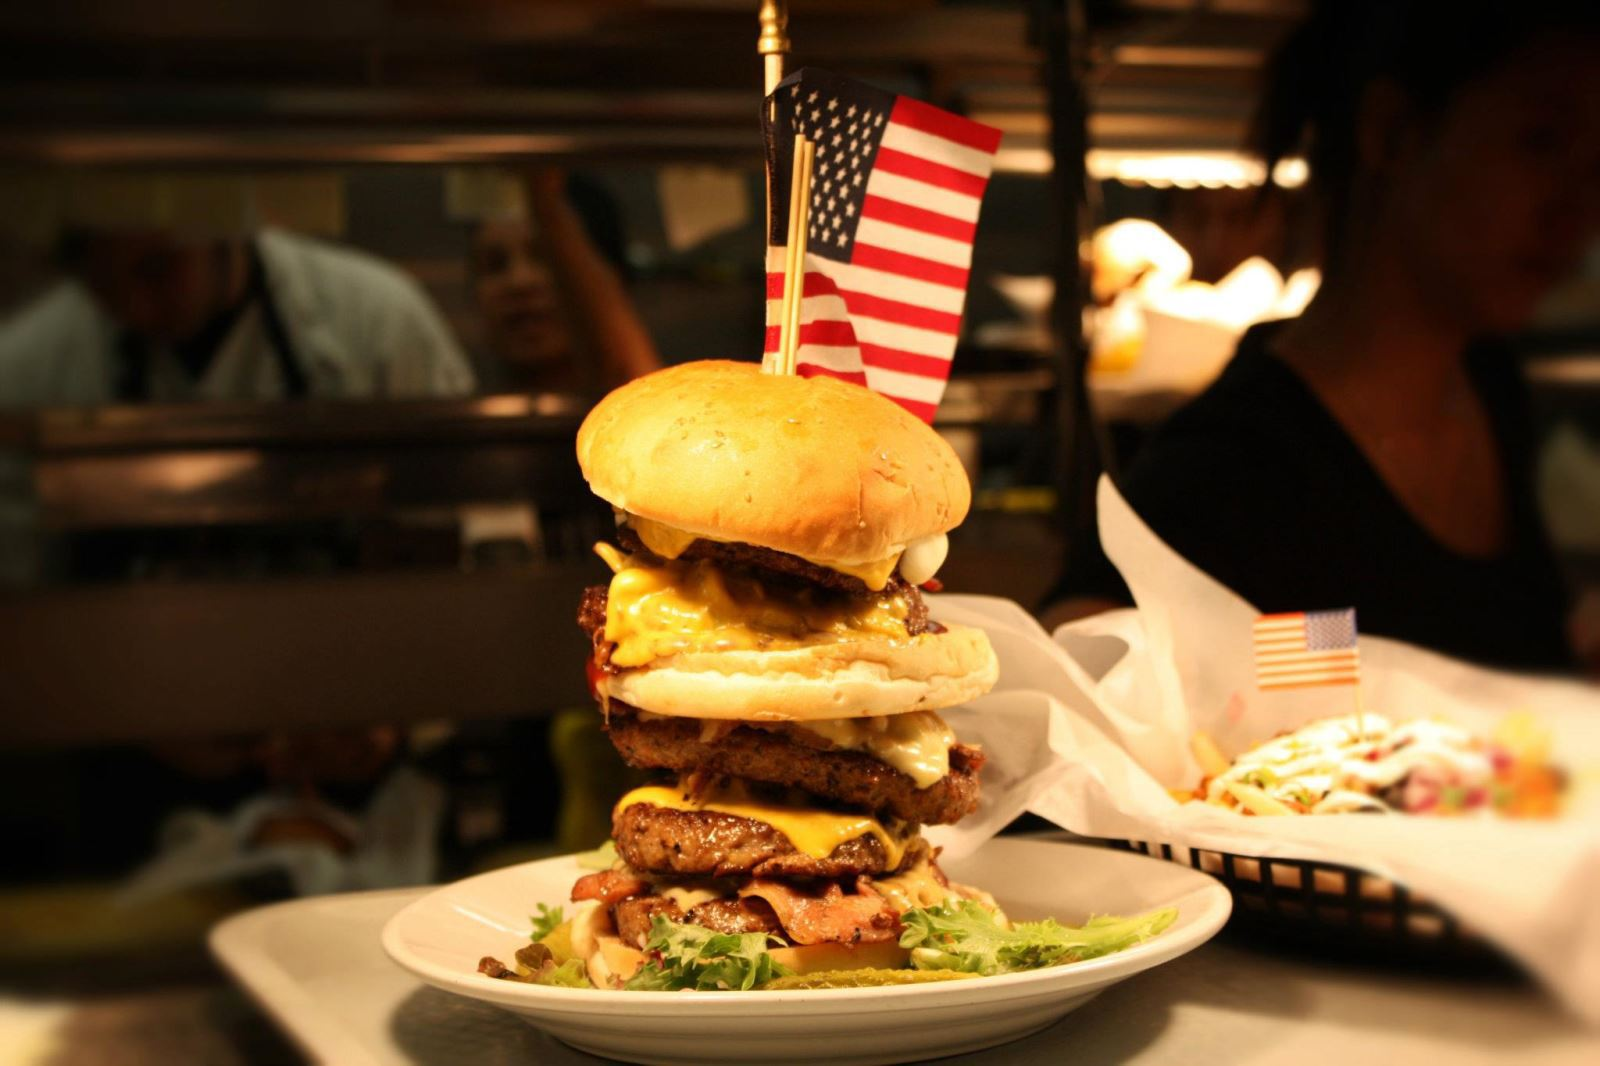 Top 5 eating challenges in melbourne melbourne for American cuisine melbourne